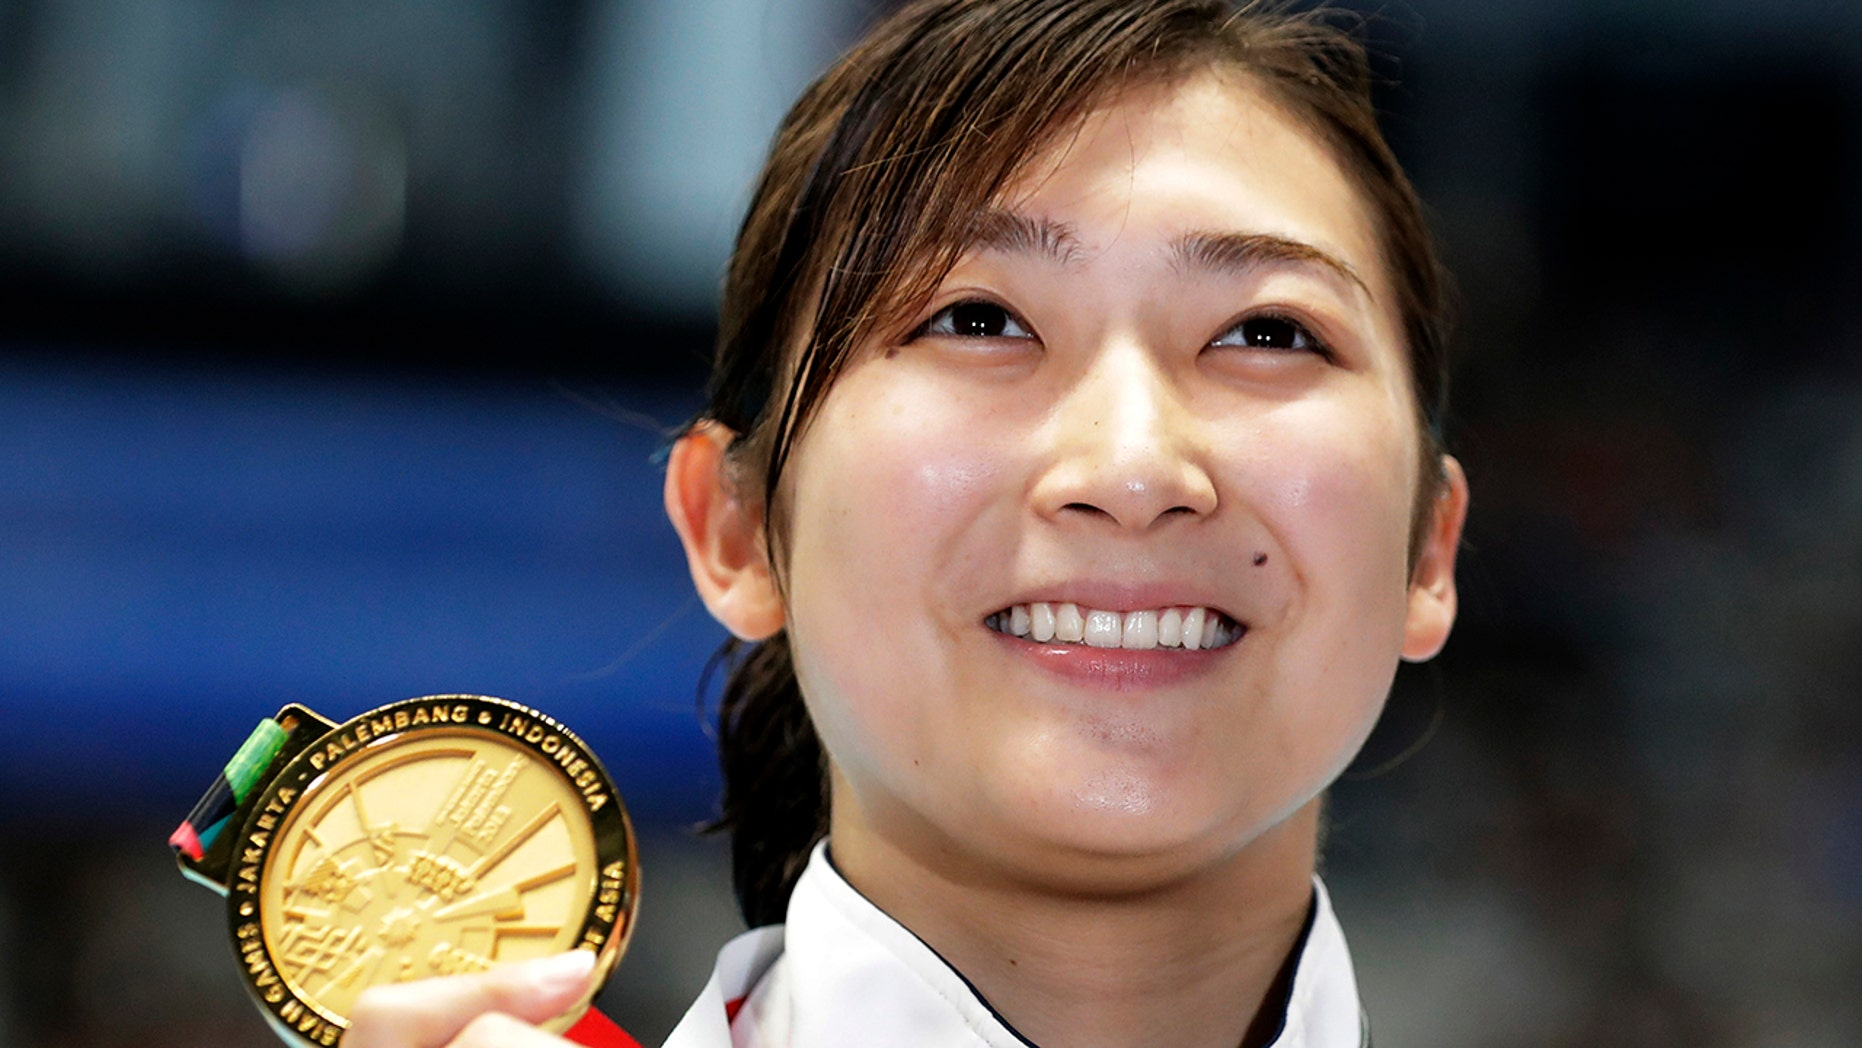 Japan's Rikako Ikee, the favorite for the 100-meter butterfly for the 2020 Tokyo Olympics, has been diagnosed with leukemia. Ikee said on her verified Twitter account Tuesday, Feb. 12, 2019, her illness surfaced when she got tests after returning from Australia not feeling well.